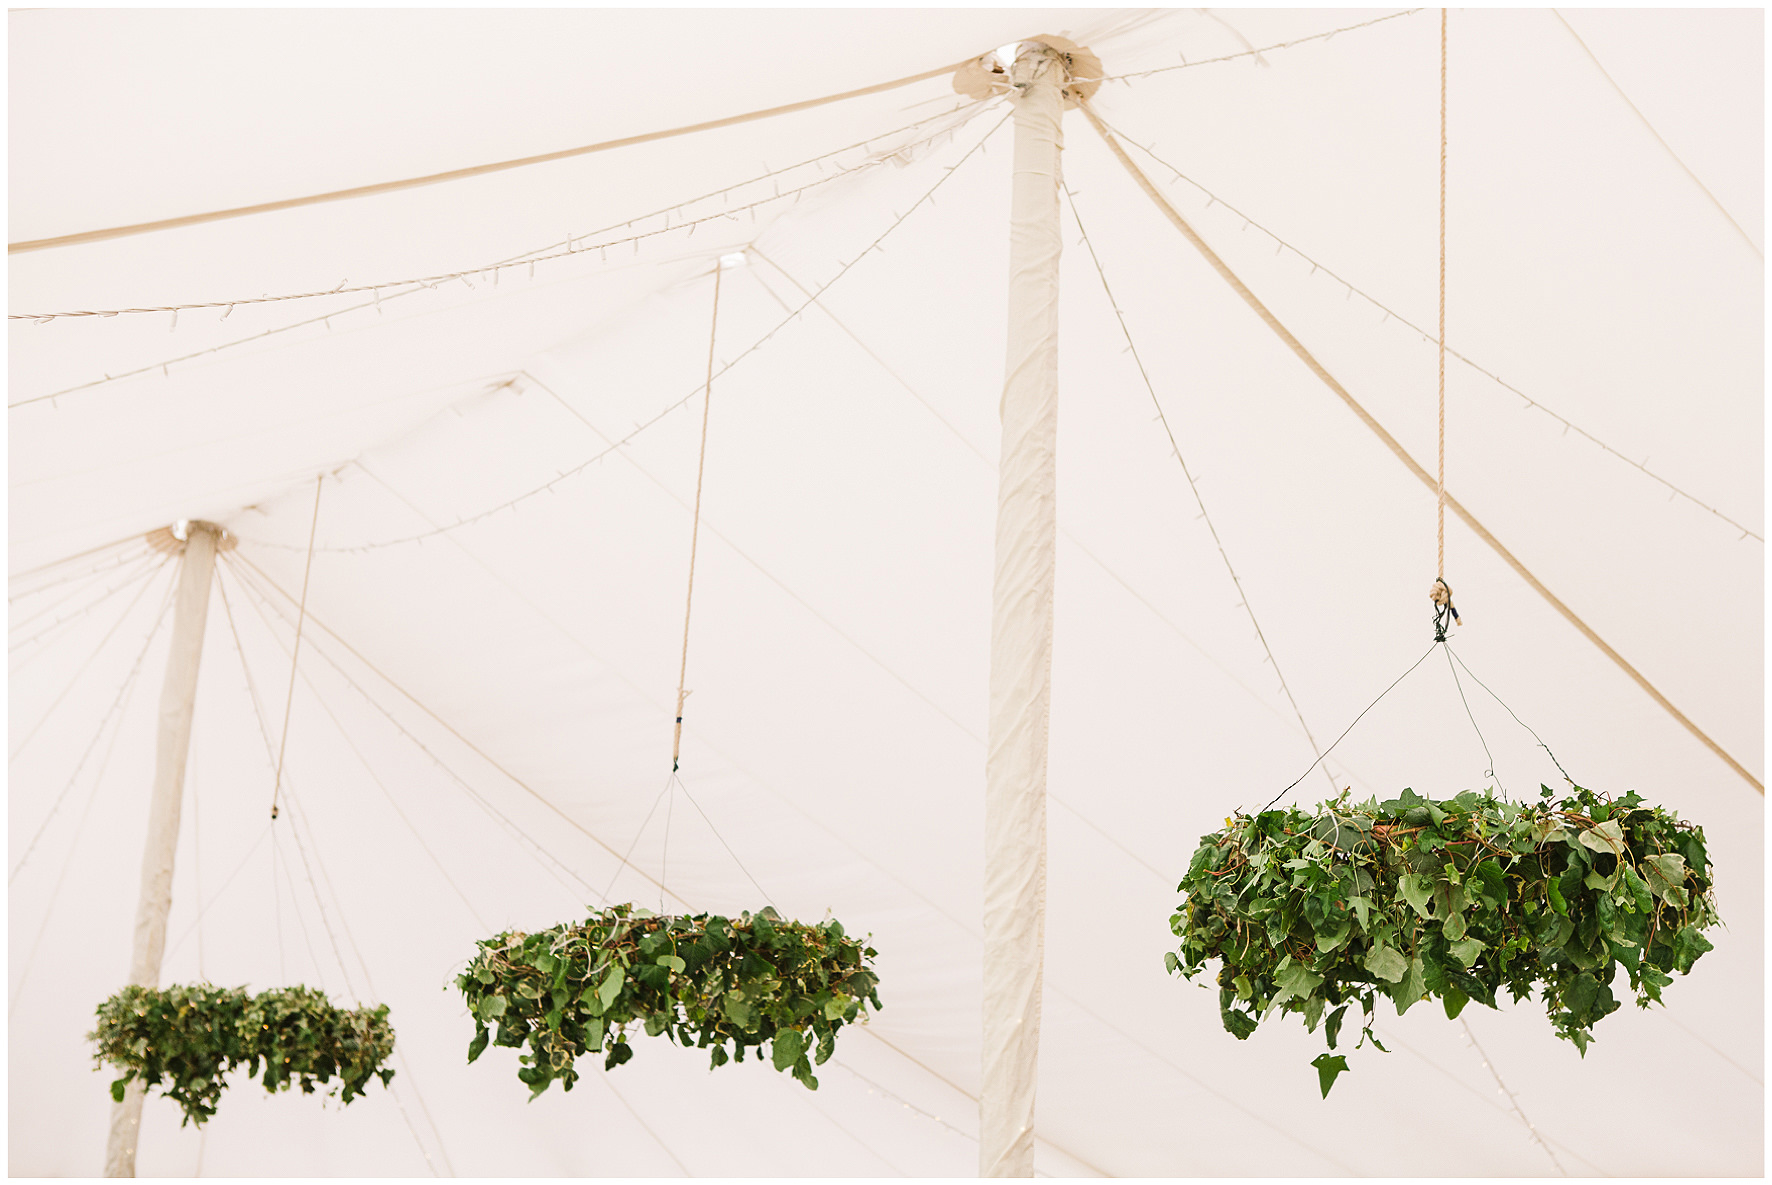 Suspended greenery from marquee